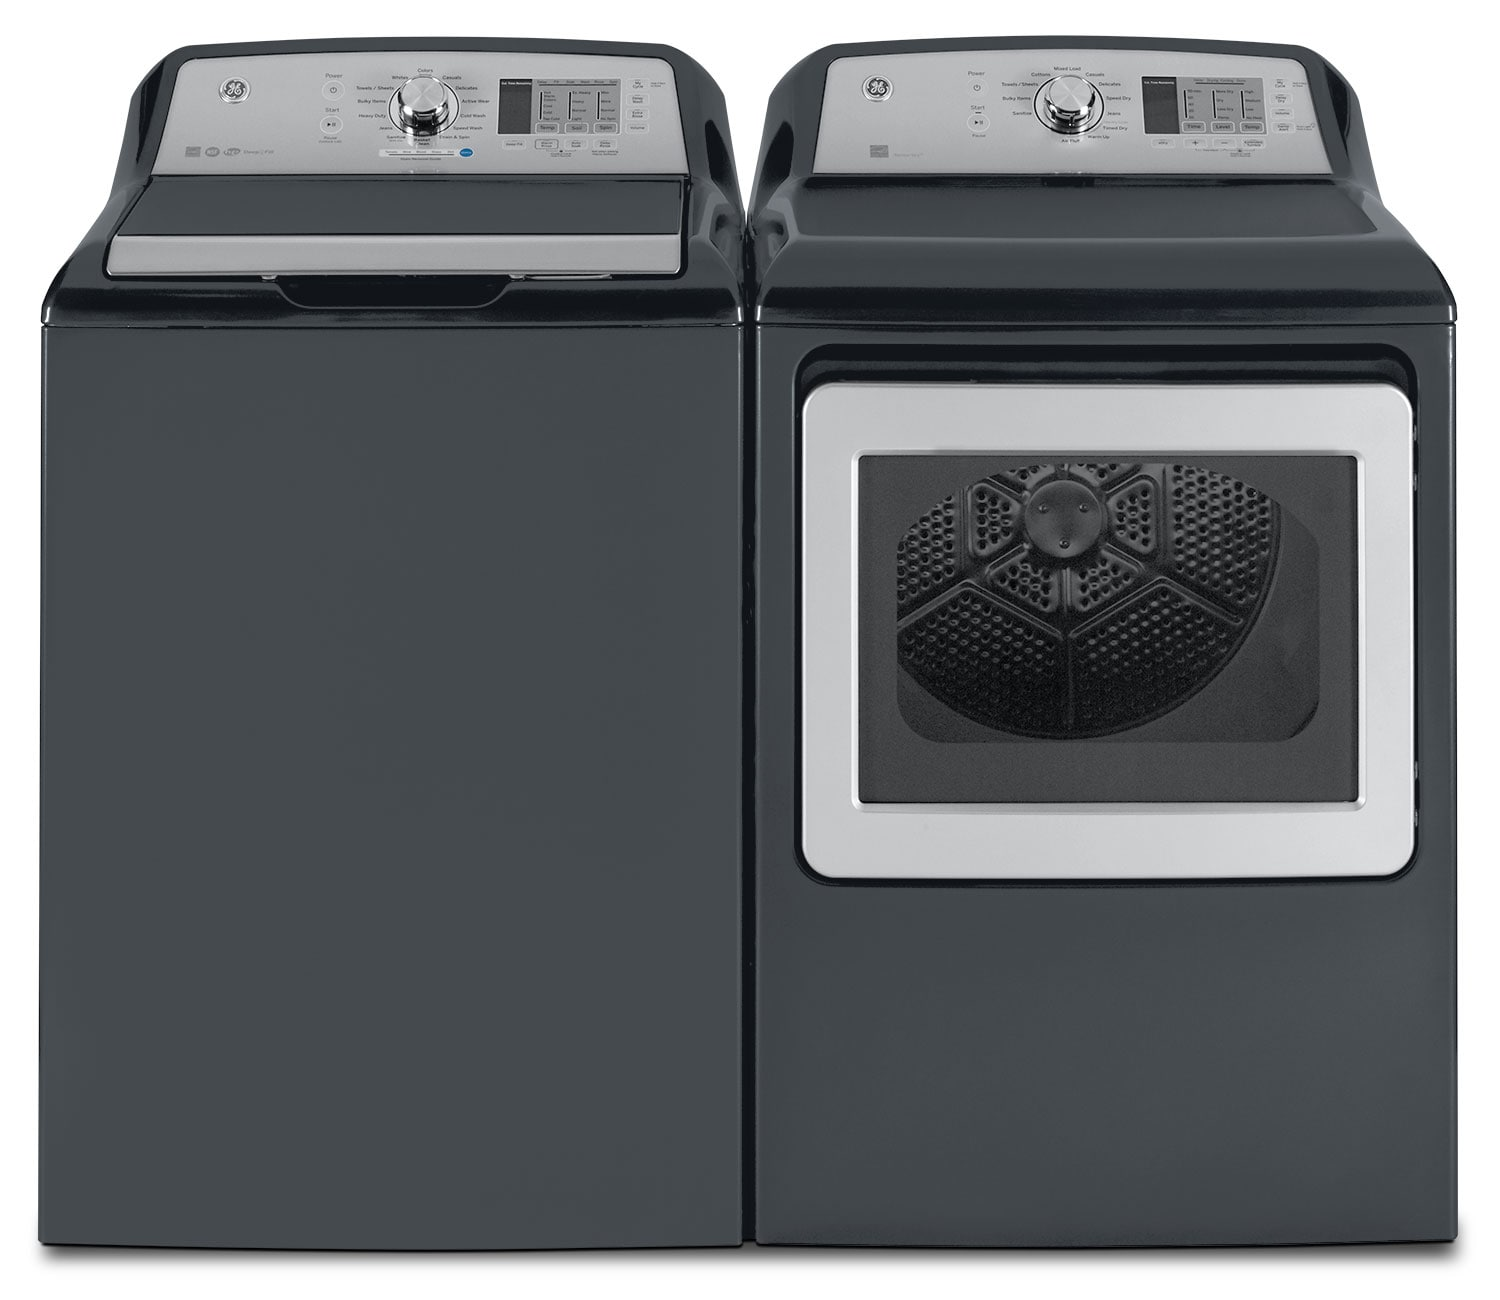 GE 5.3 Cu. Ft. Top-Load Washer and 7.4 Cu. Ft. Electric Dryer